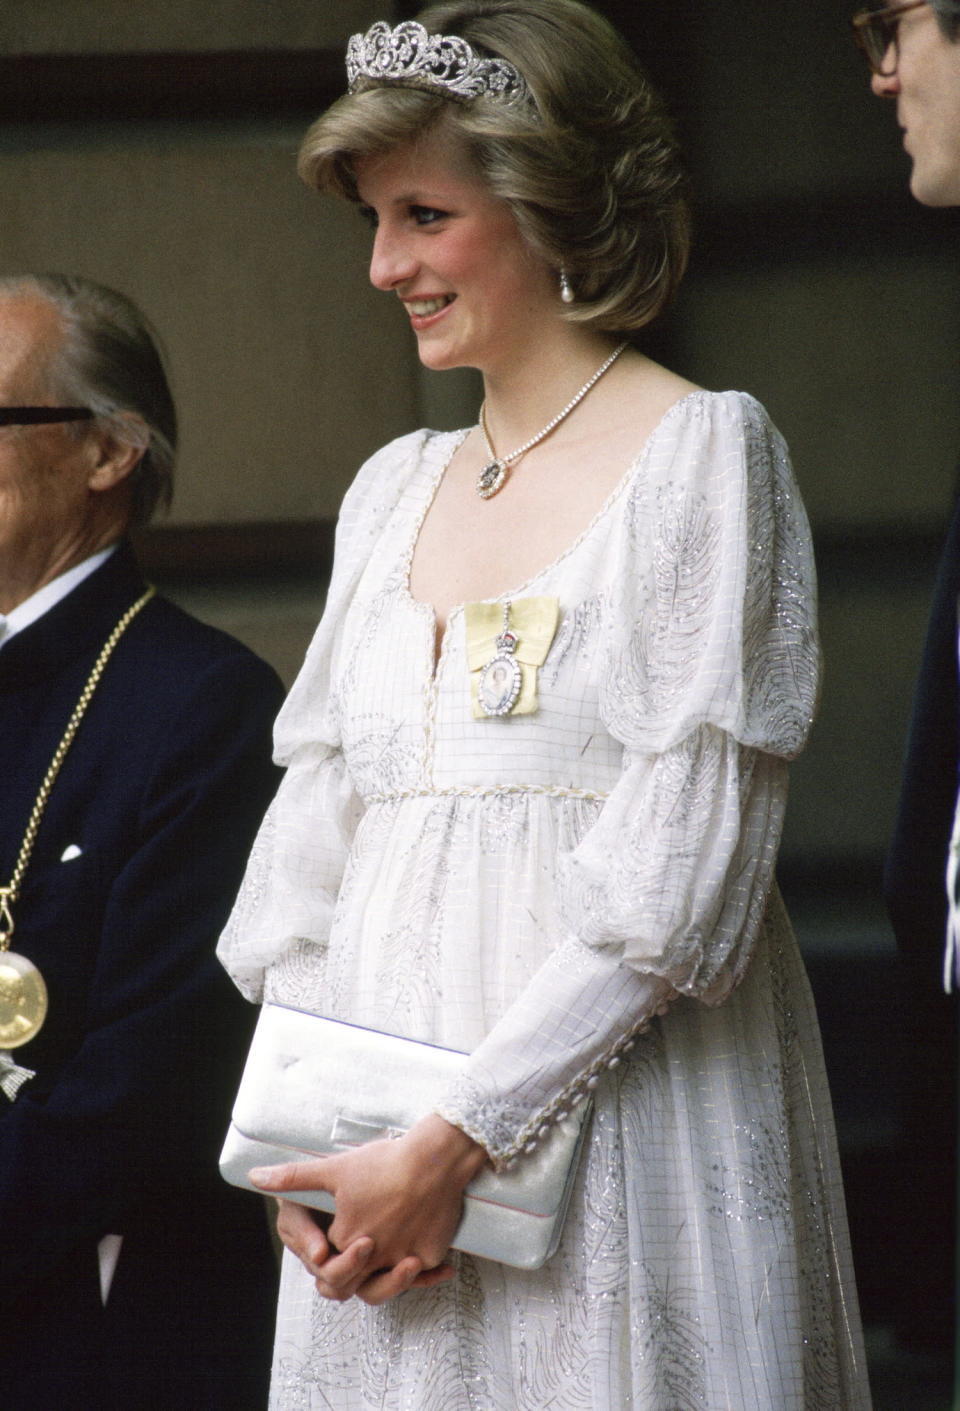 <p>While pregnant with Prince Harry, Princess Diana wears a bohemian-style white maternity dress with the Spencer family tiara and a diamond necklace in the shape of the Prince of Wales' ostrich feathers for an event at the Royal Academy. (Photo: Getty Images) </p>